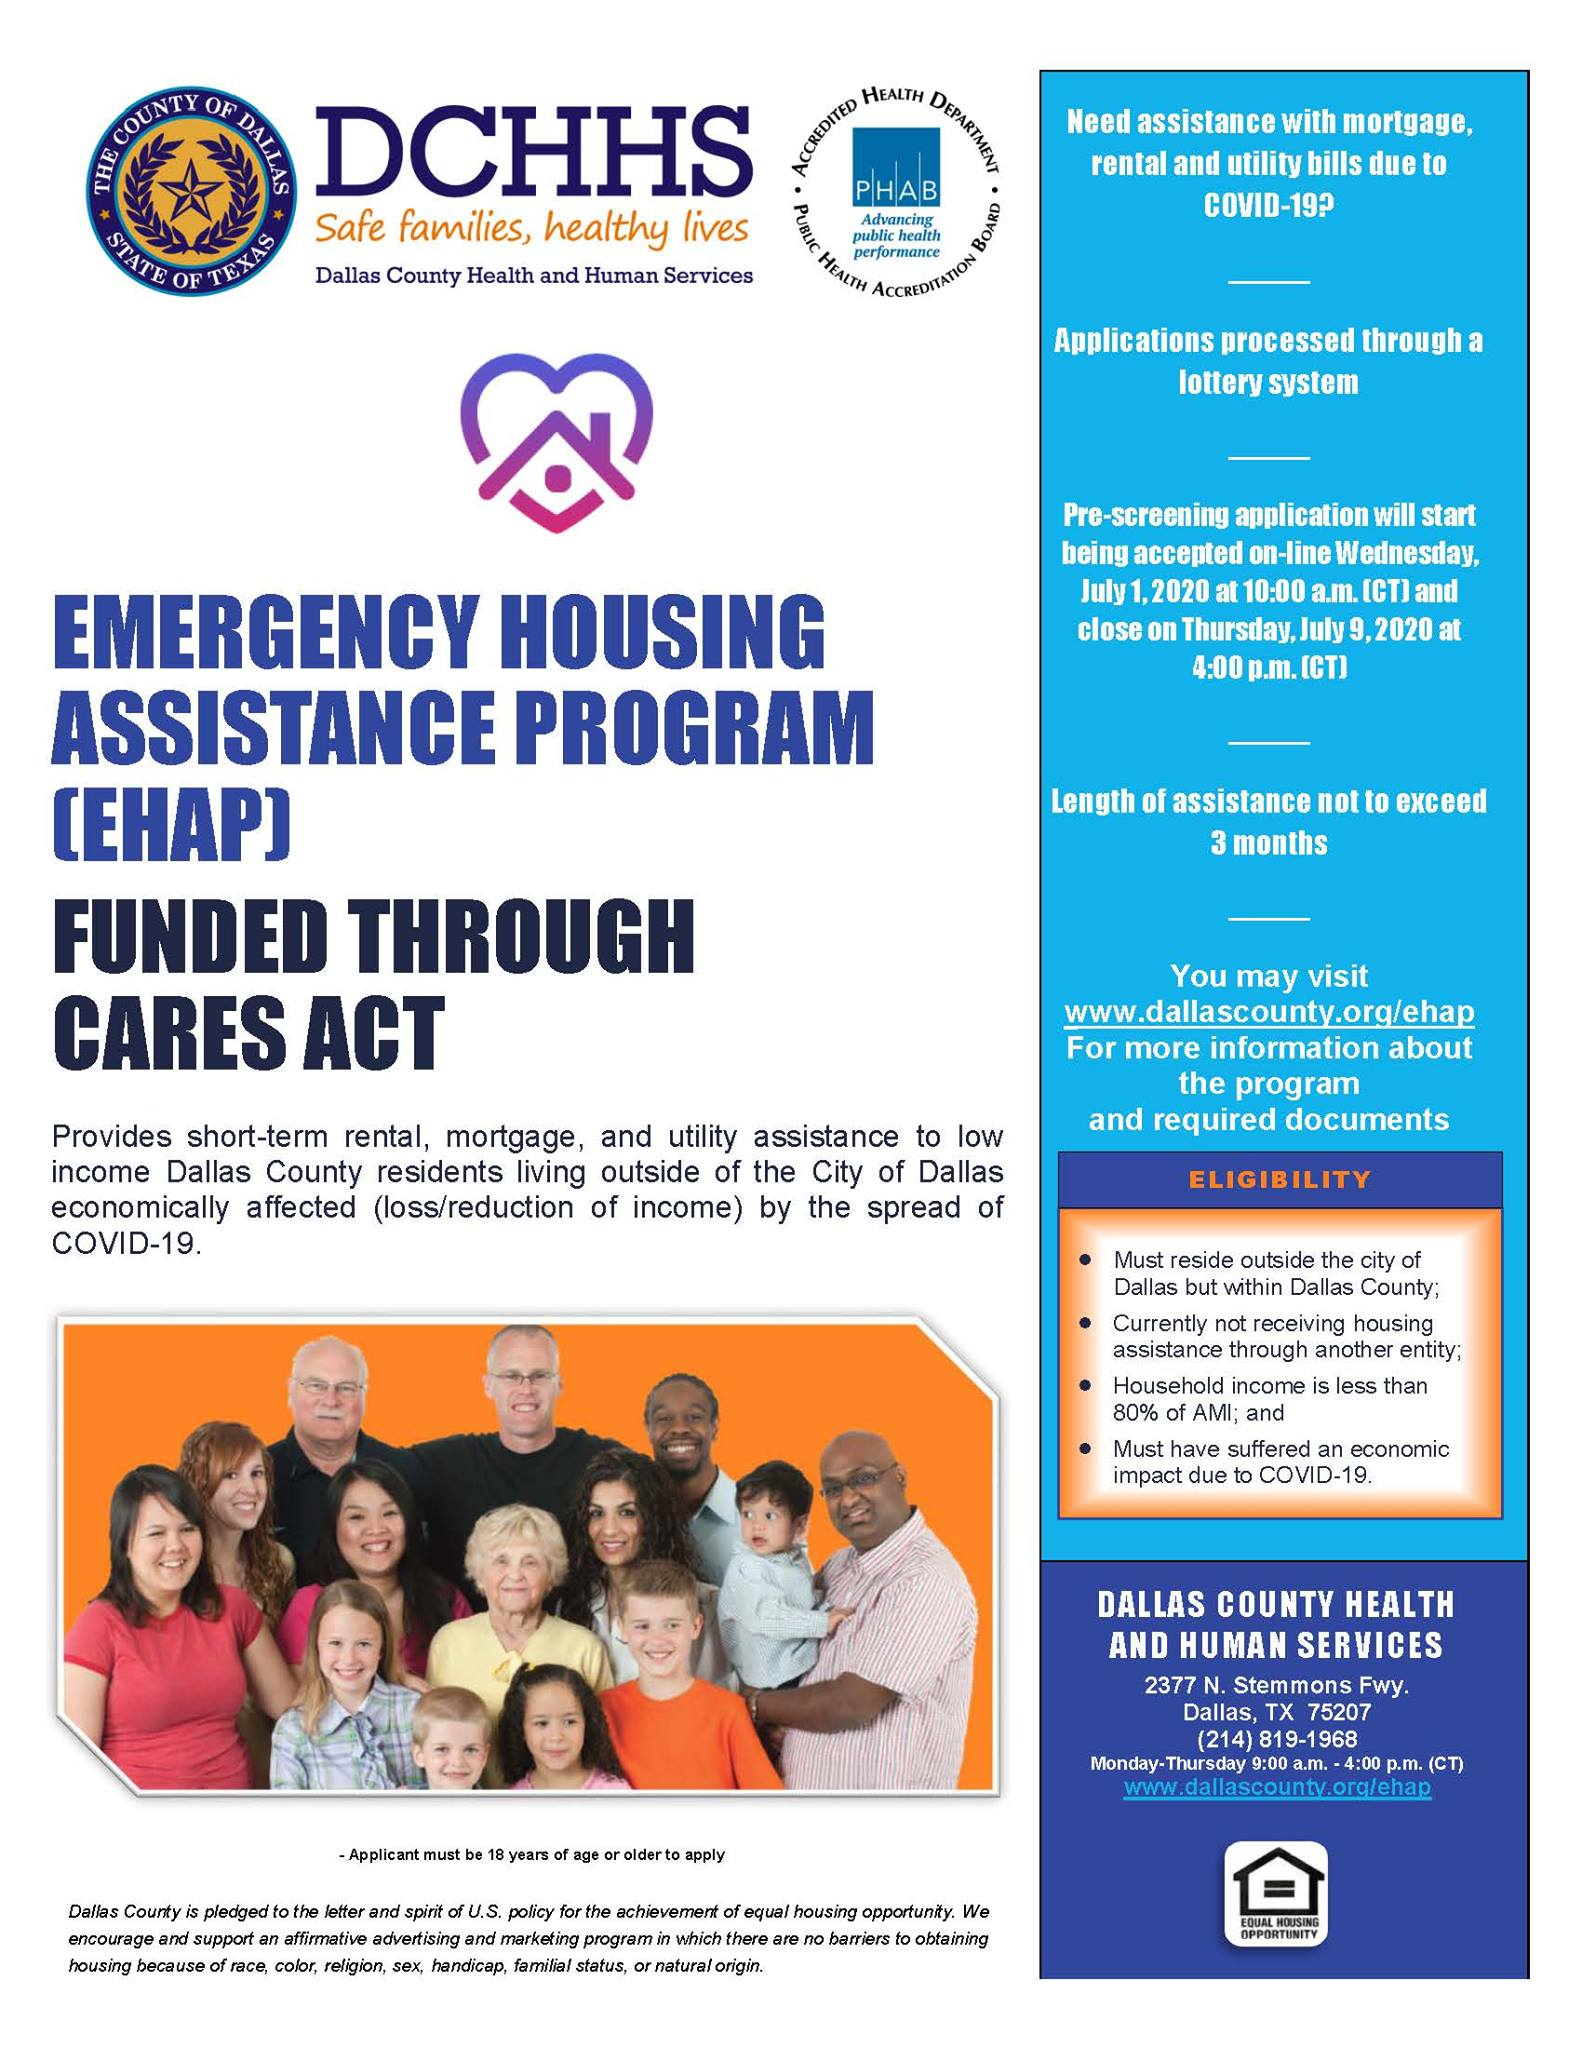 DCHHS Reopens Emergency Housing Assistance Program 1